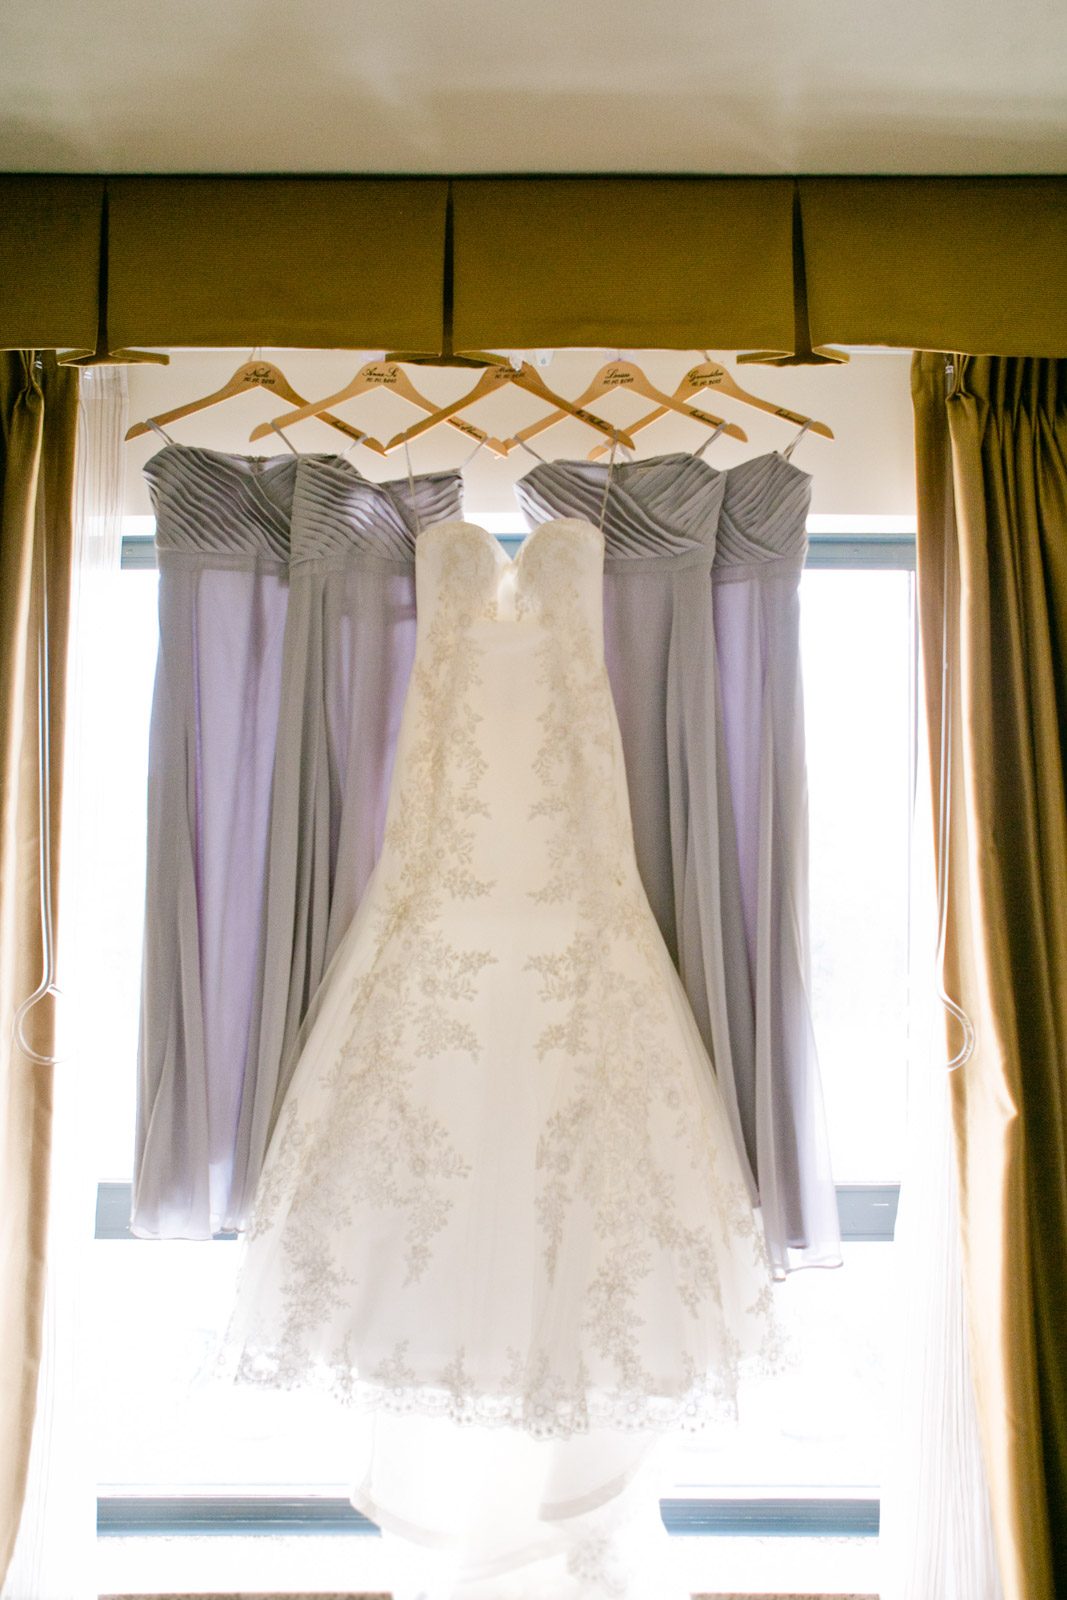 a brideswedding gown and lavender bridesmaid dresses hang in the light of a window